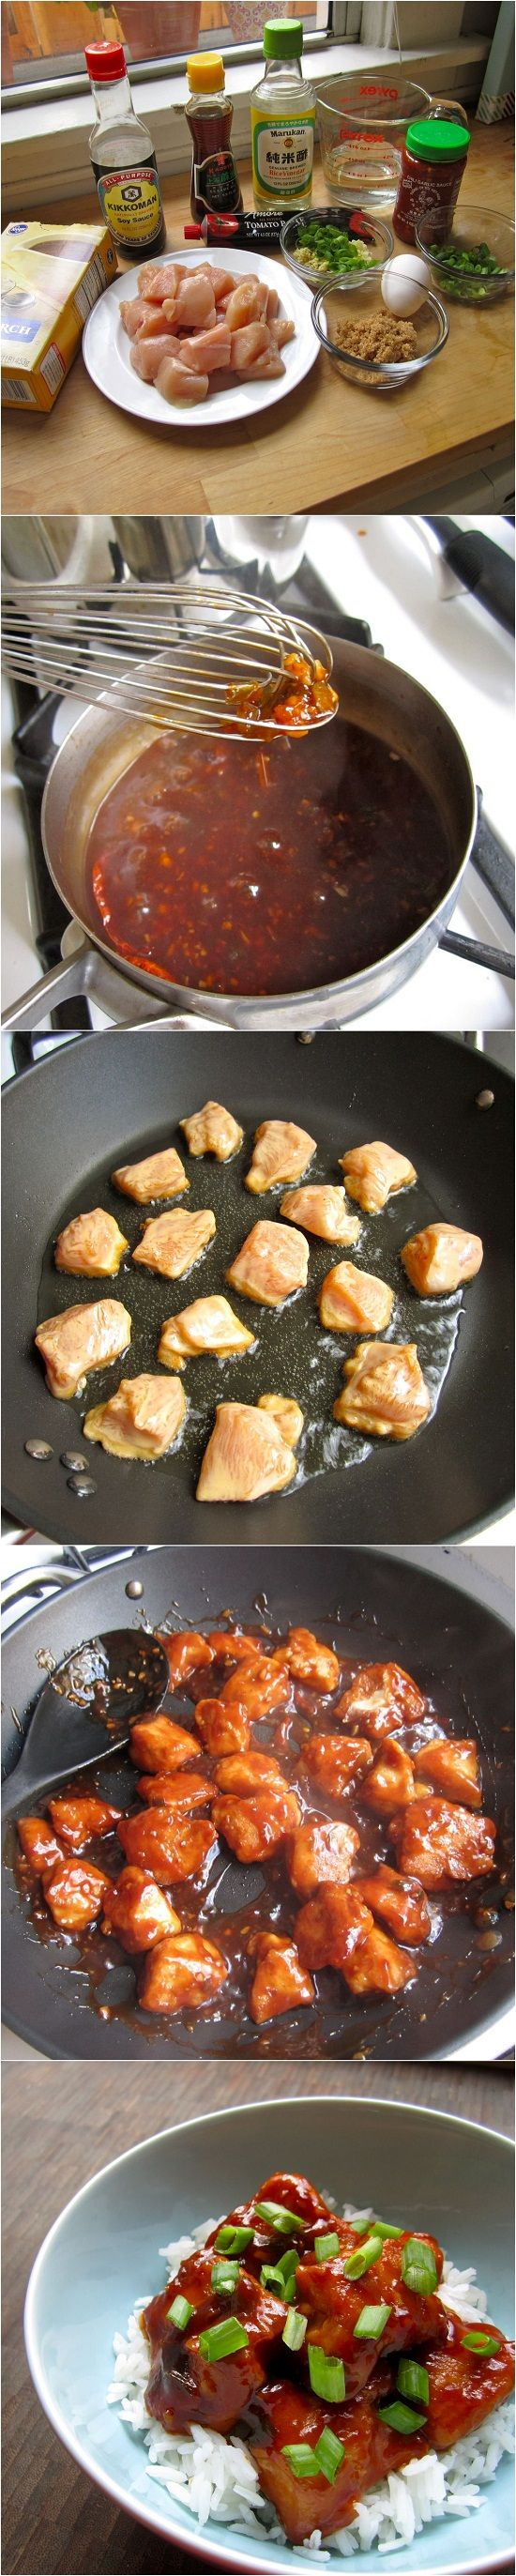 General tso's chicken. This is so easy and taste great